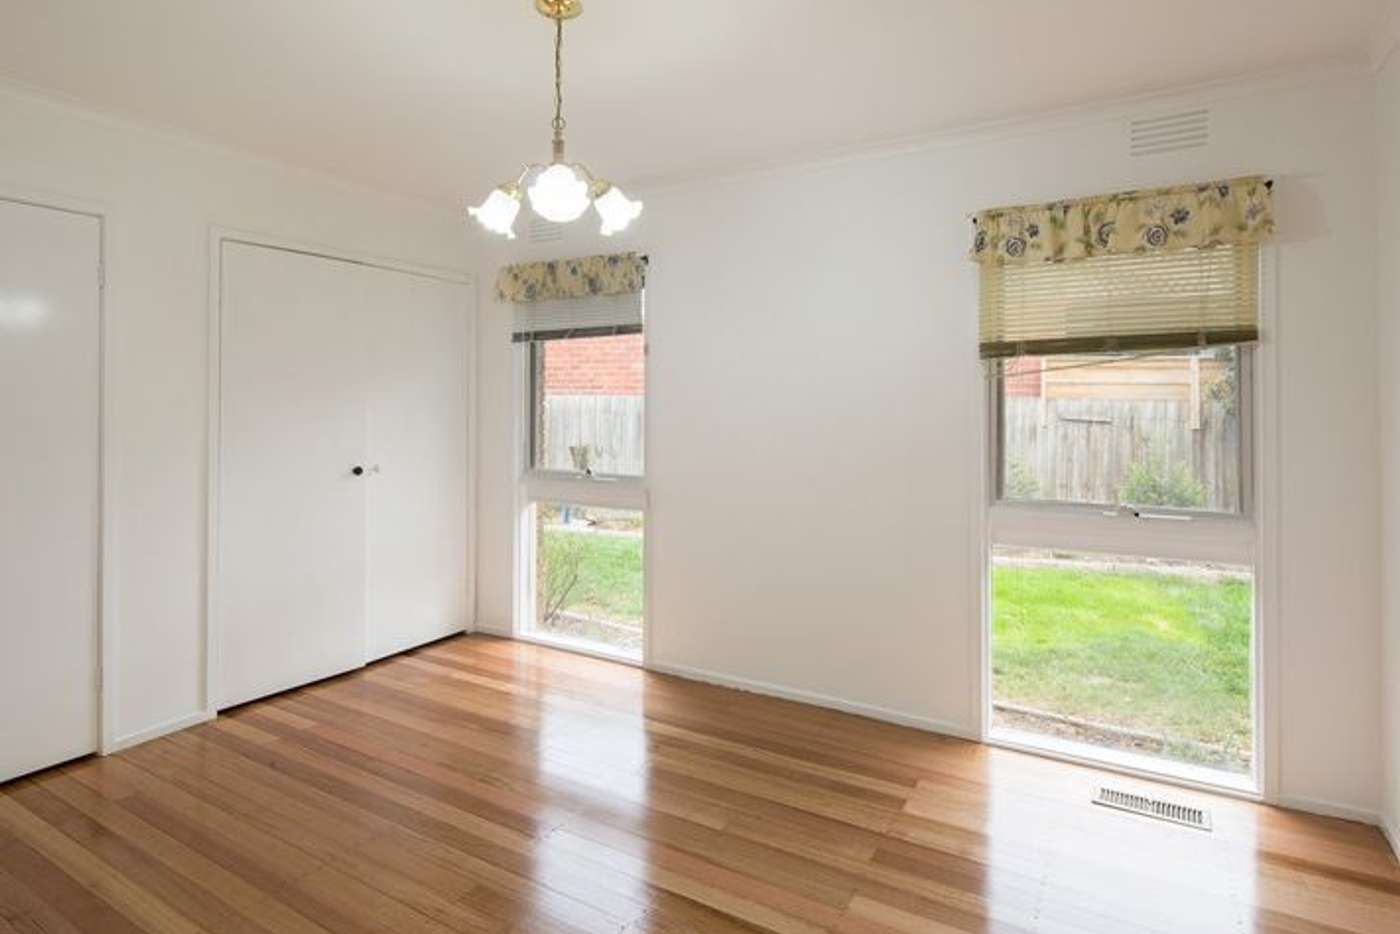 Sixth view of Homely house listing, 2 Saintsbury Crescent, Dandenong North VIC 3175